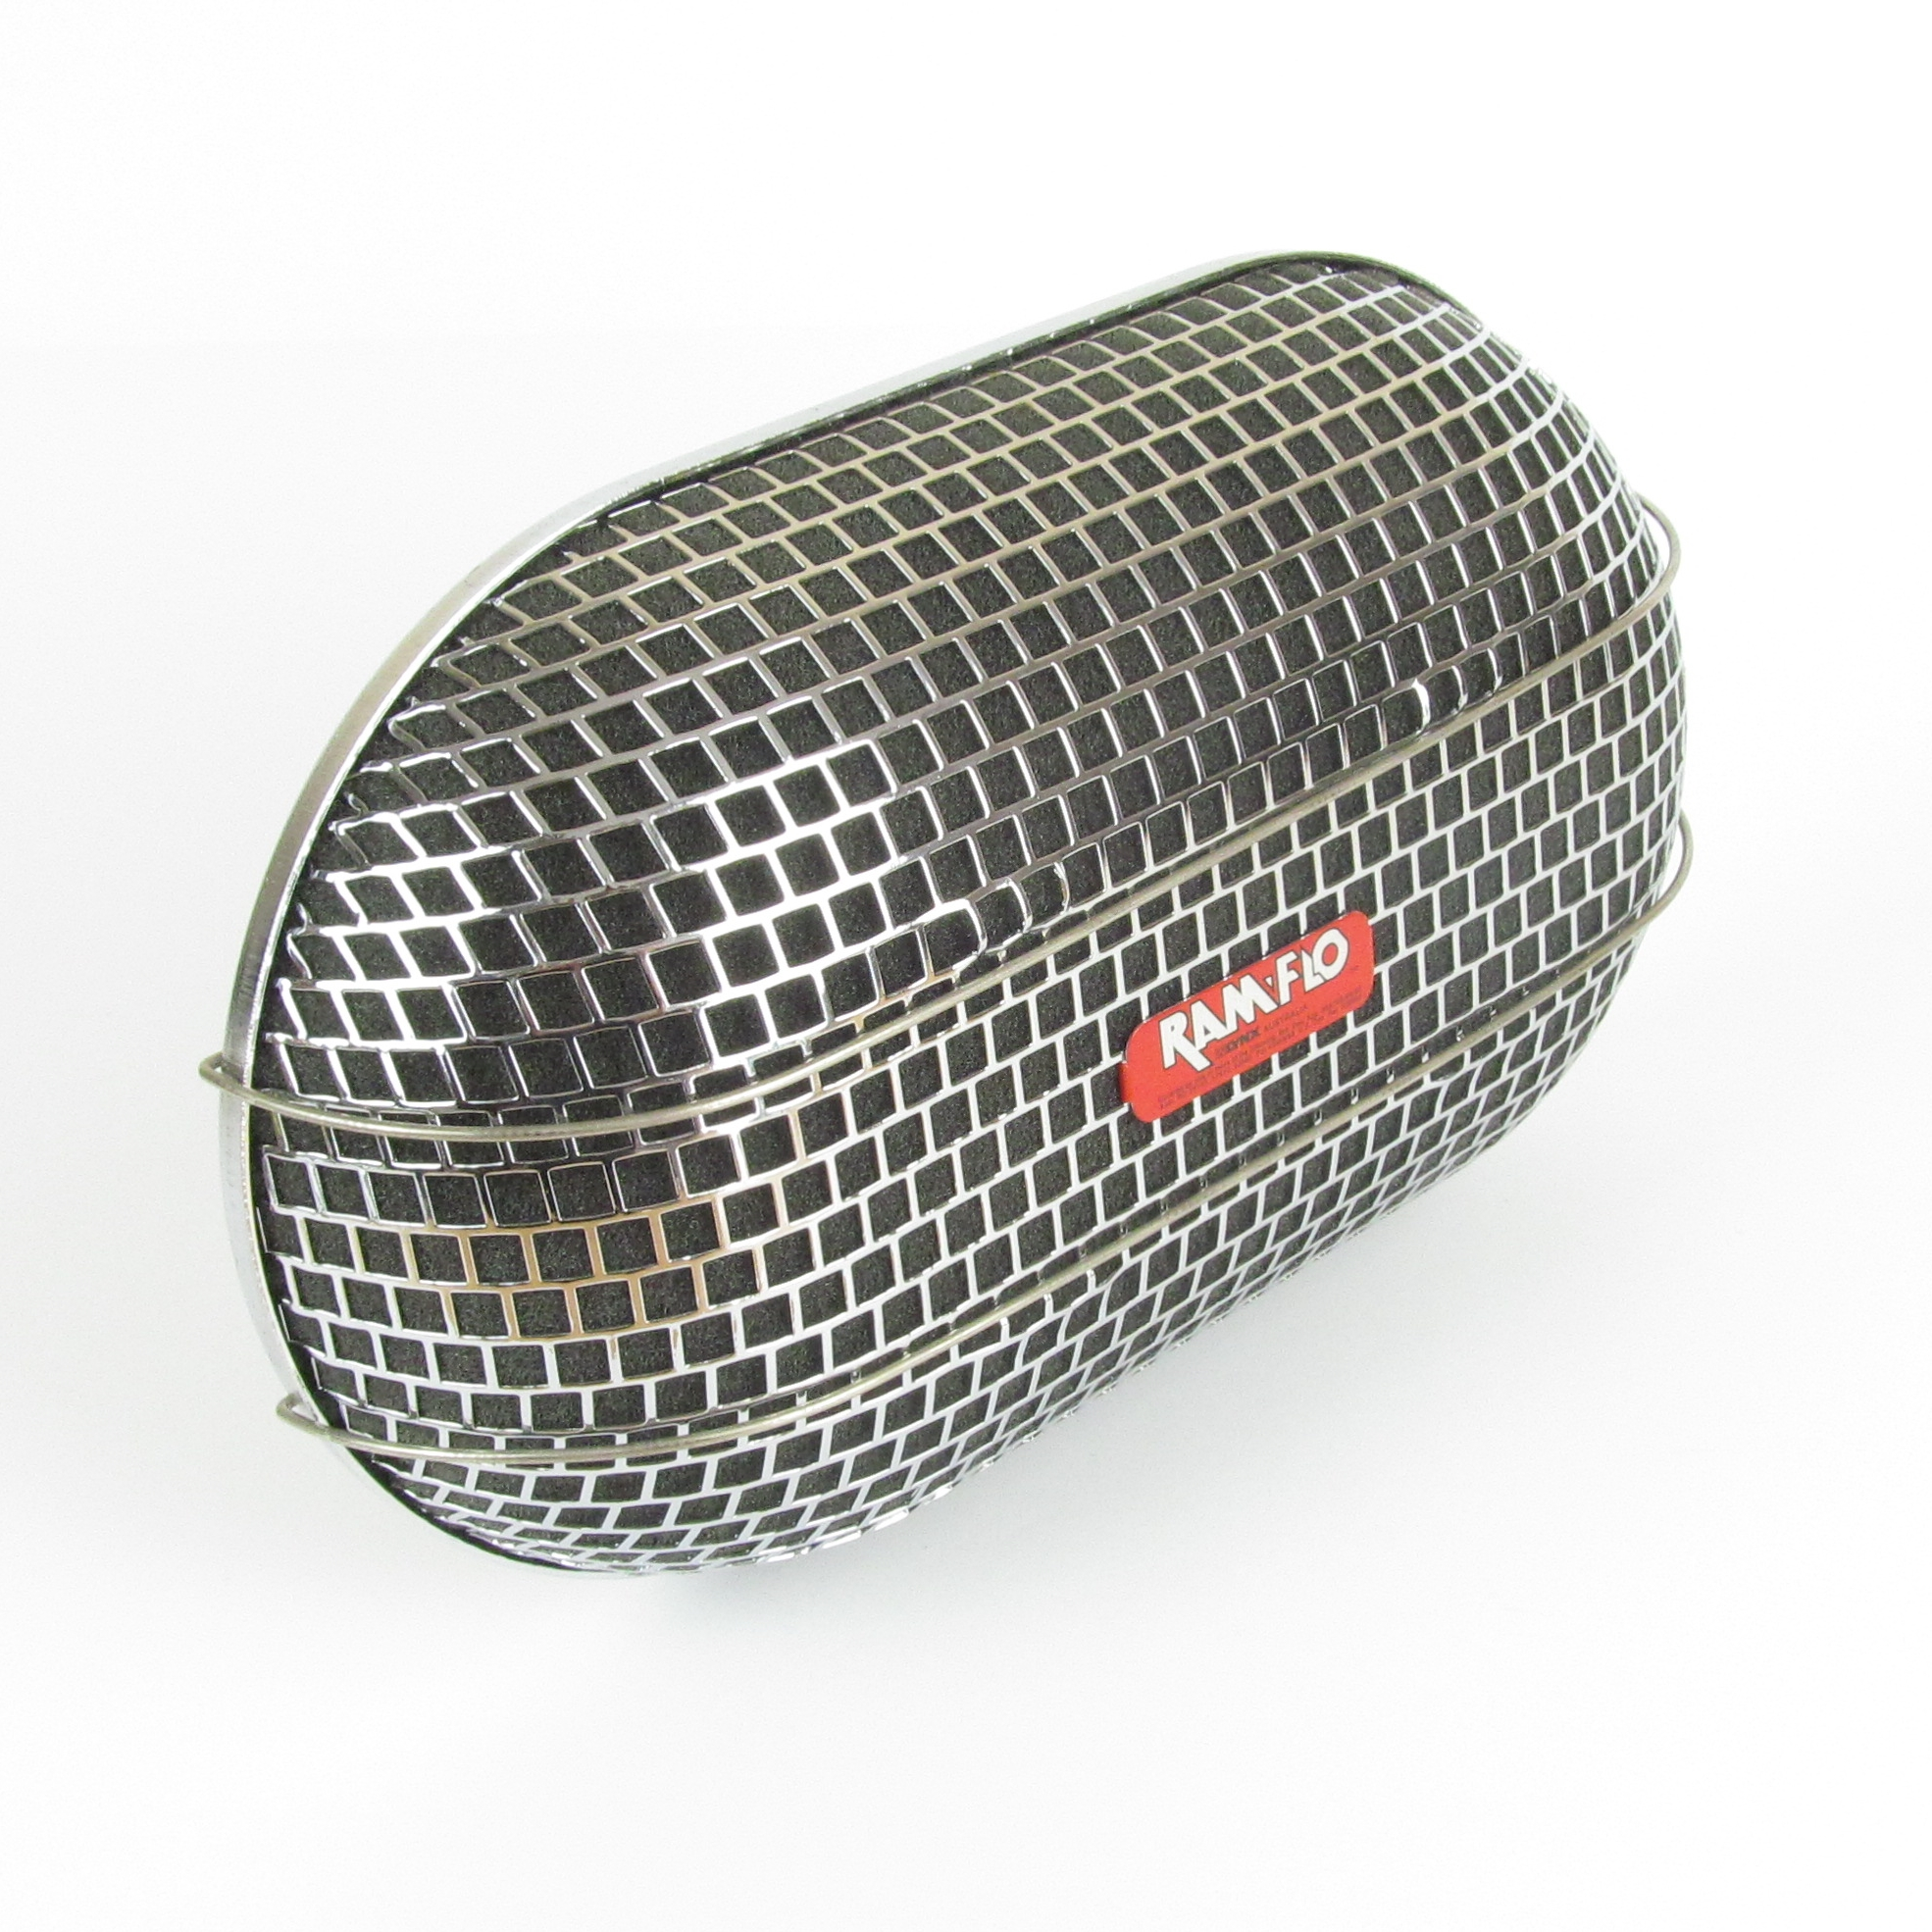 RAMFLO AIR FILTER FOR WEBER IDA 48 TWIN CARB VW AIR-COOLED / RX7 / CHEVY V8